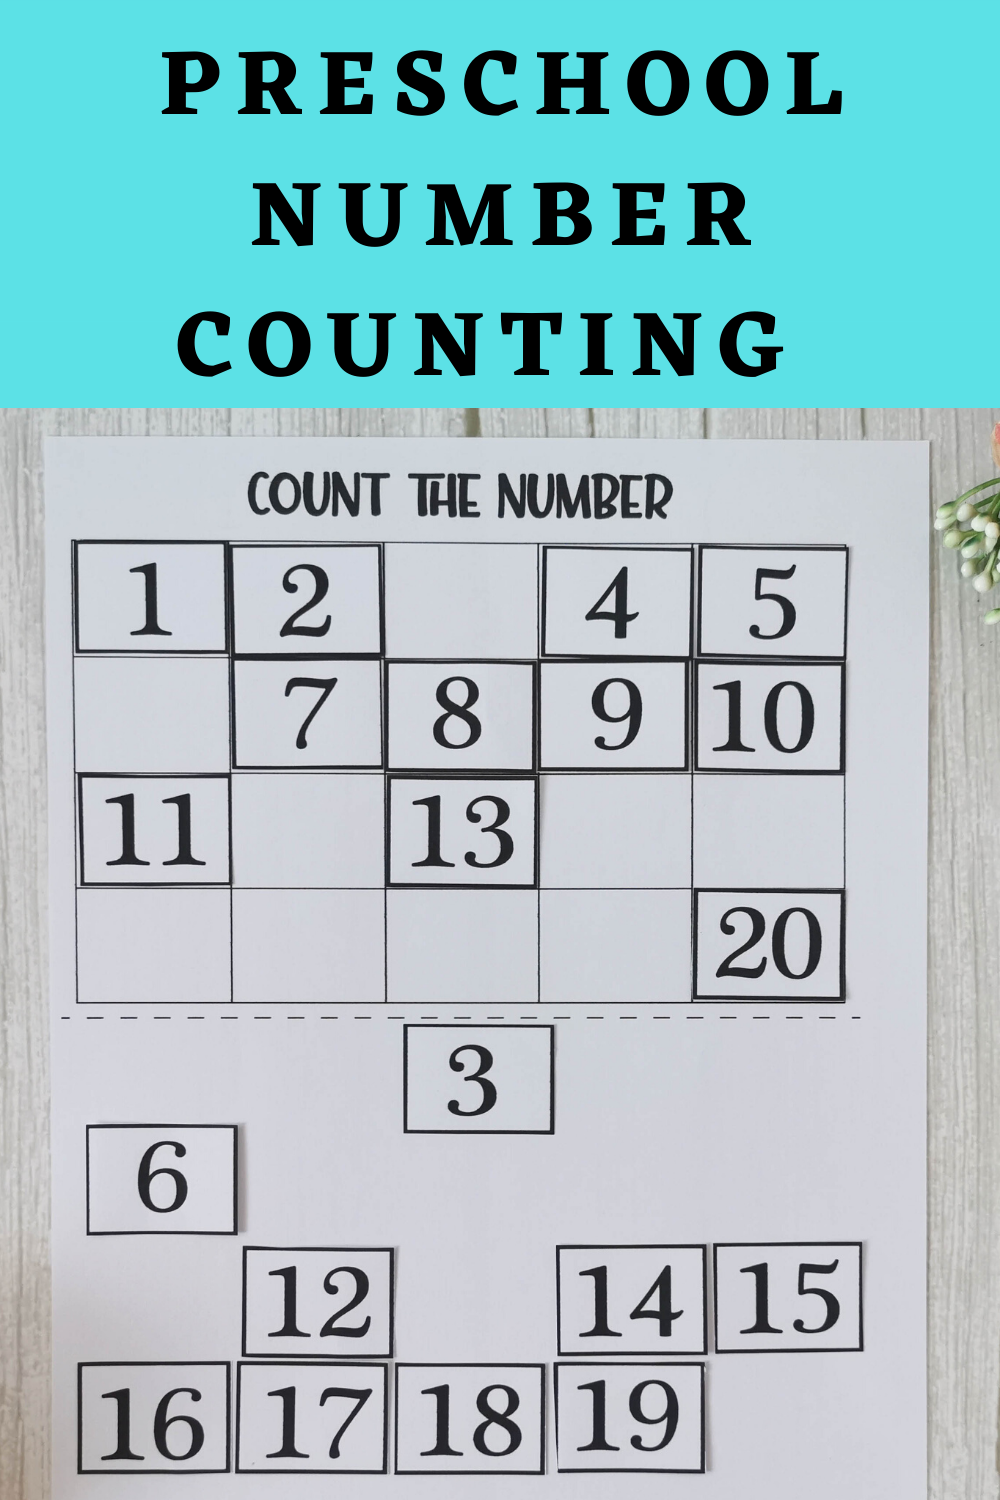 Preschool Number Counting Printable Activity Count To 20 Etsy Numbers Preschool Math Activities Preschool Printable Activities For Kids [ 1500 x 1000 Pixel ]